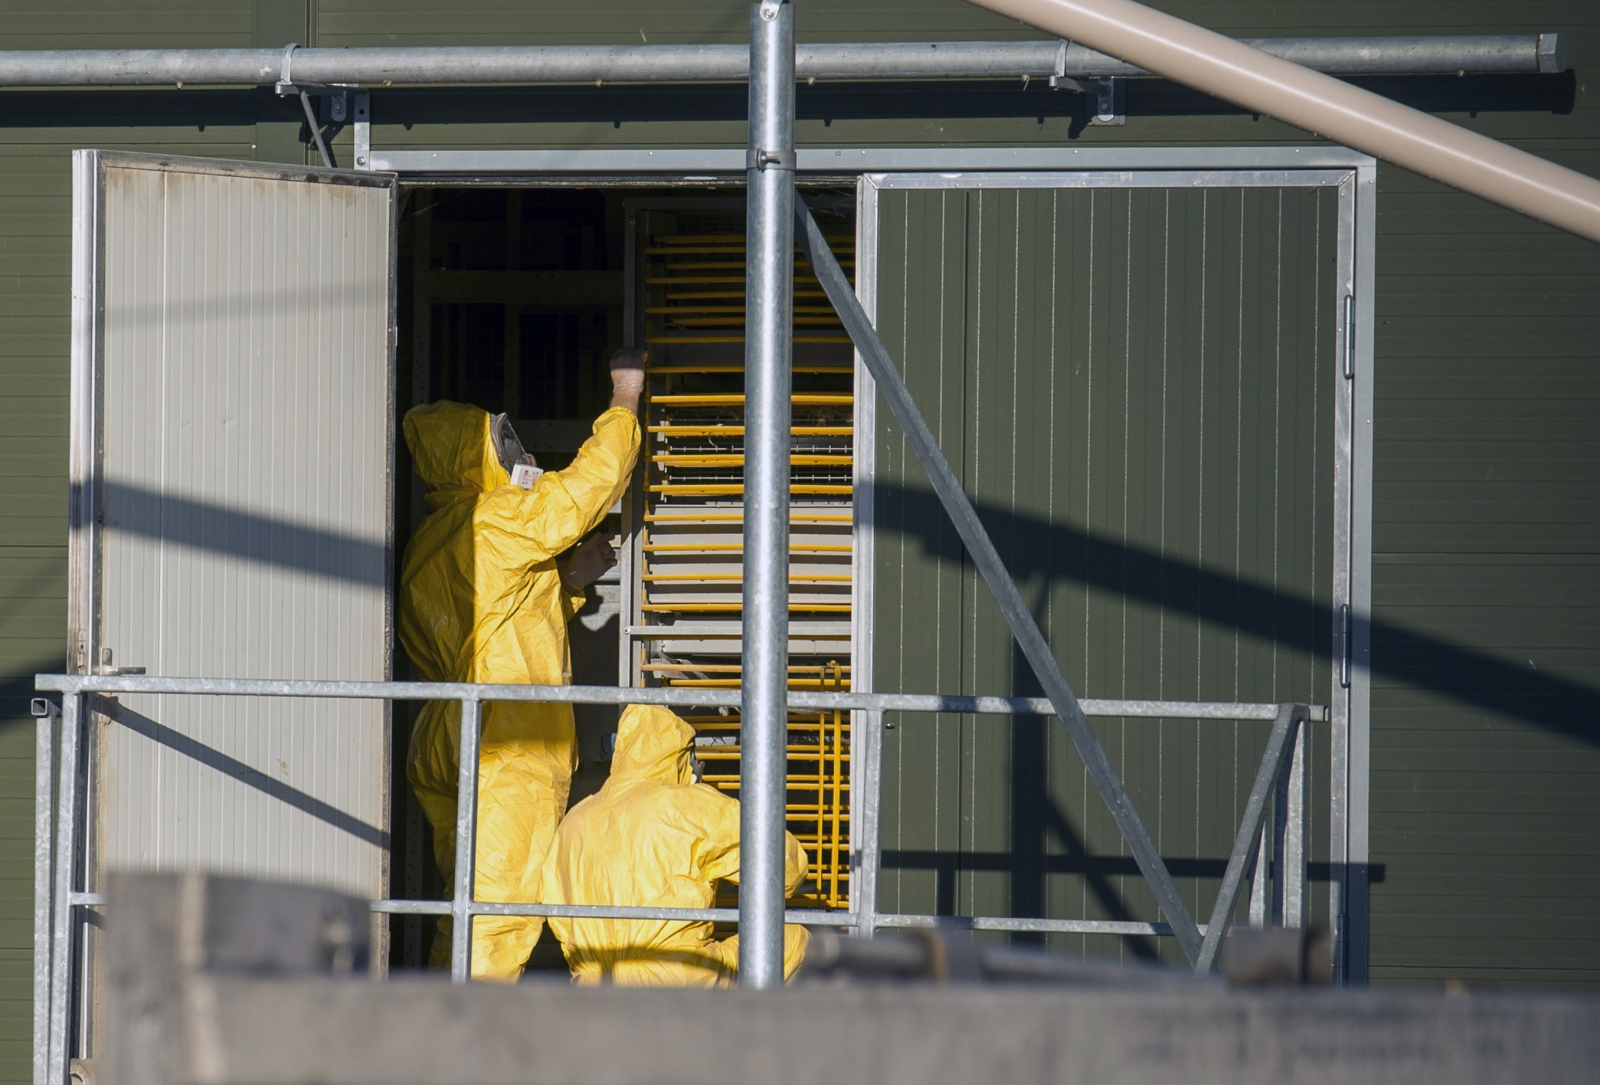 Officials in protective clothing at the farm in Hekendorp, Netherlands, where bird flu has been detected. (Reuters)